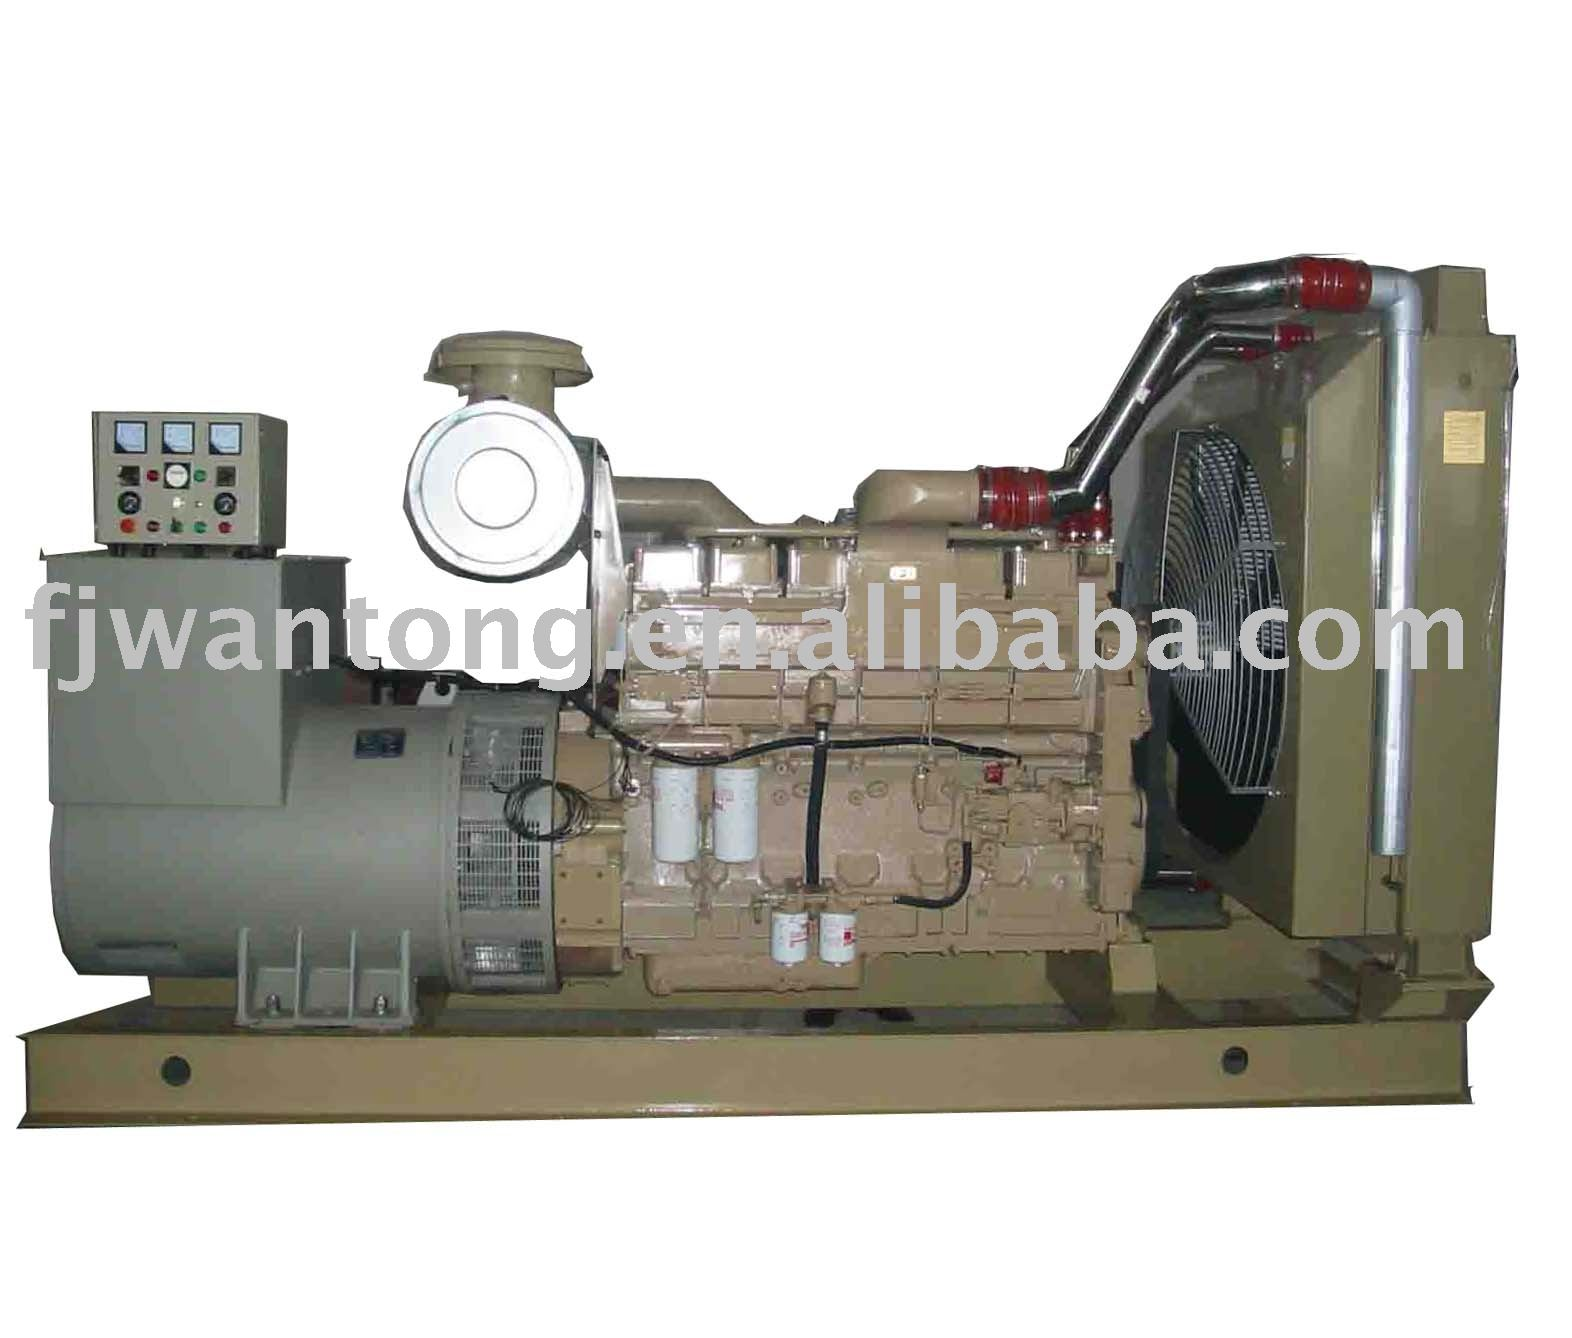 Gf2 20kw Diesel Generator Gf2 20kw Diesel Generator Suppliers and